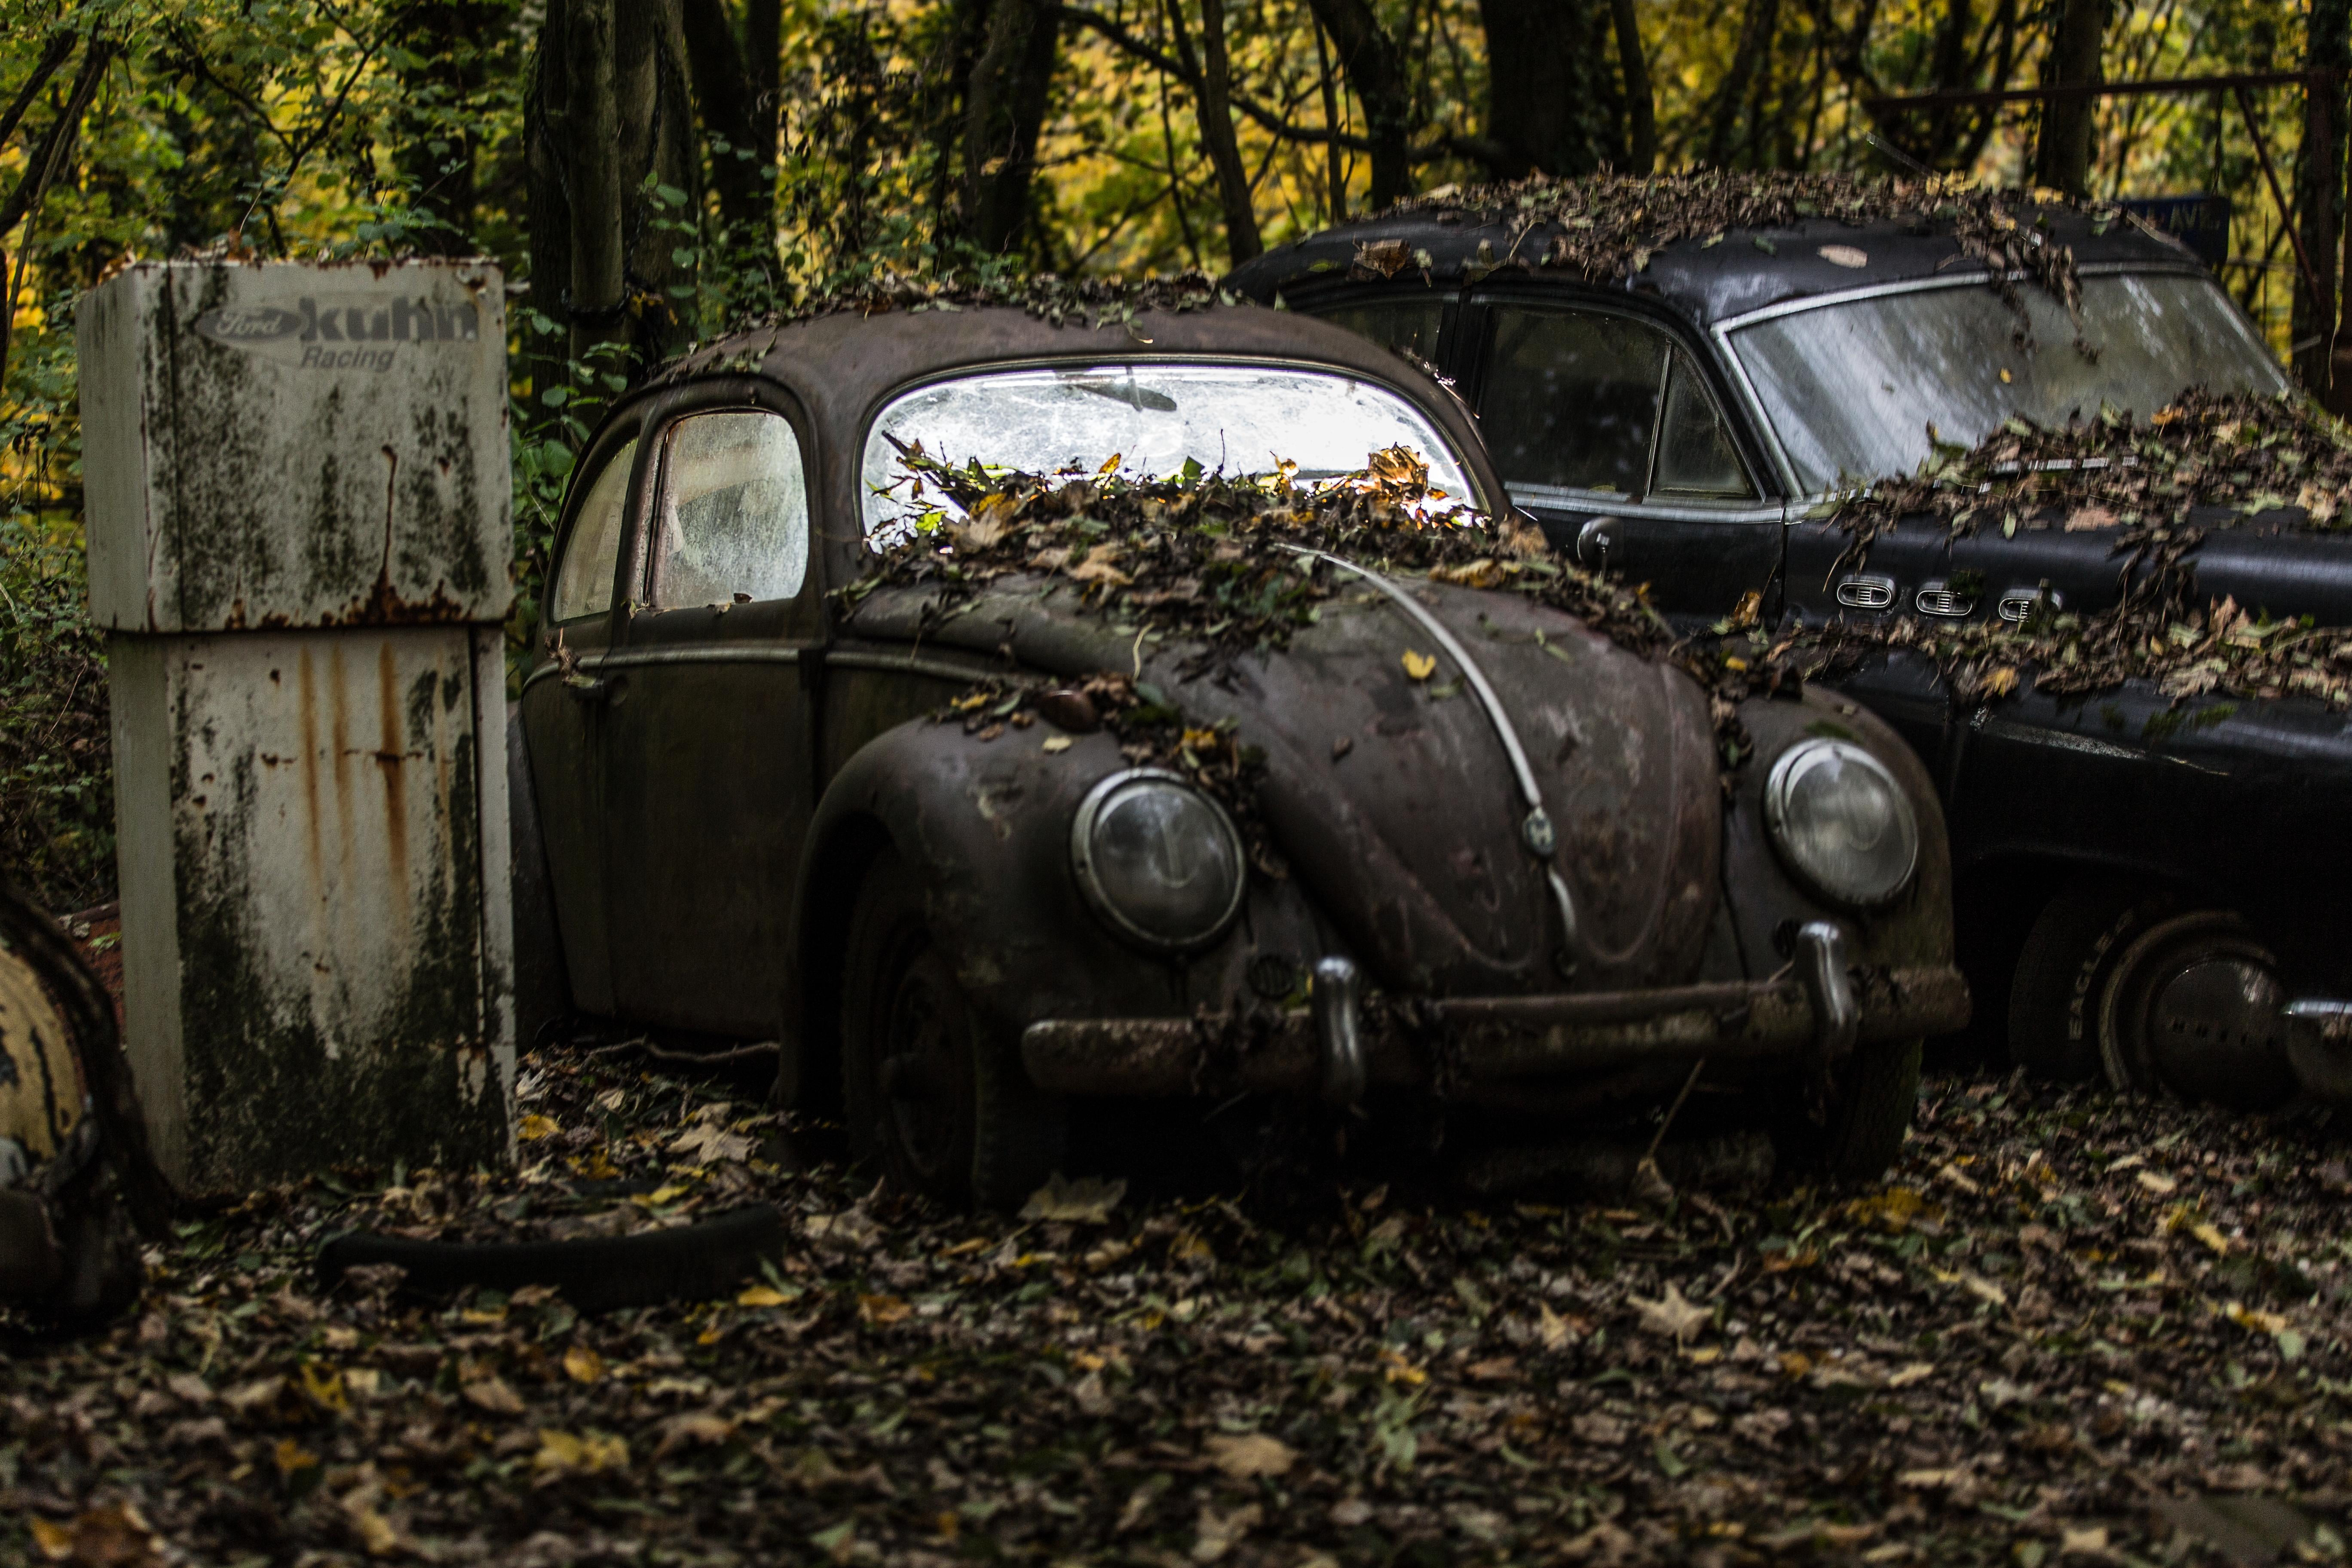 Iphone 2g Wallpaper Vintage Black Volkswagen Beetle Near Car Covered With